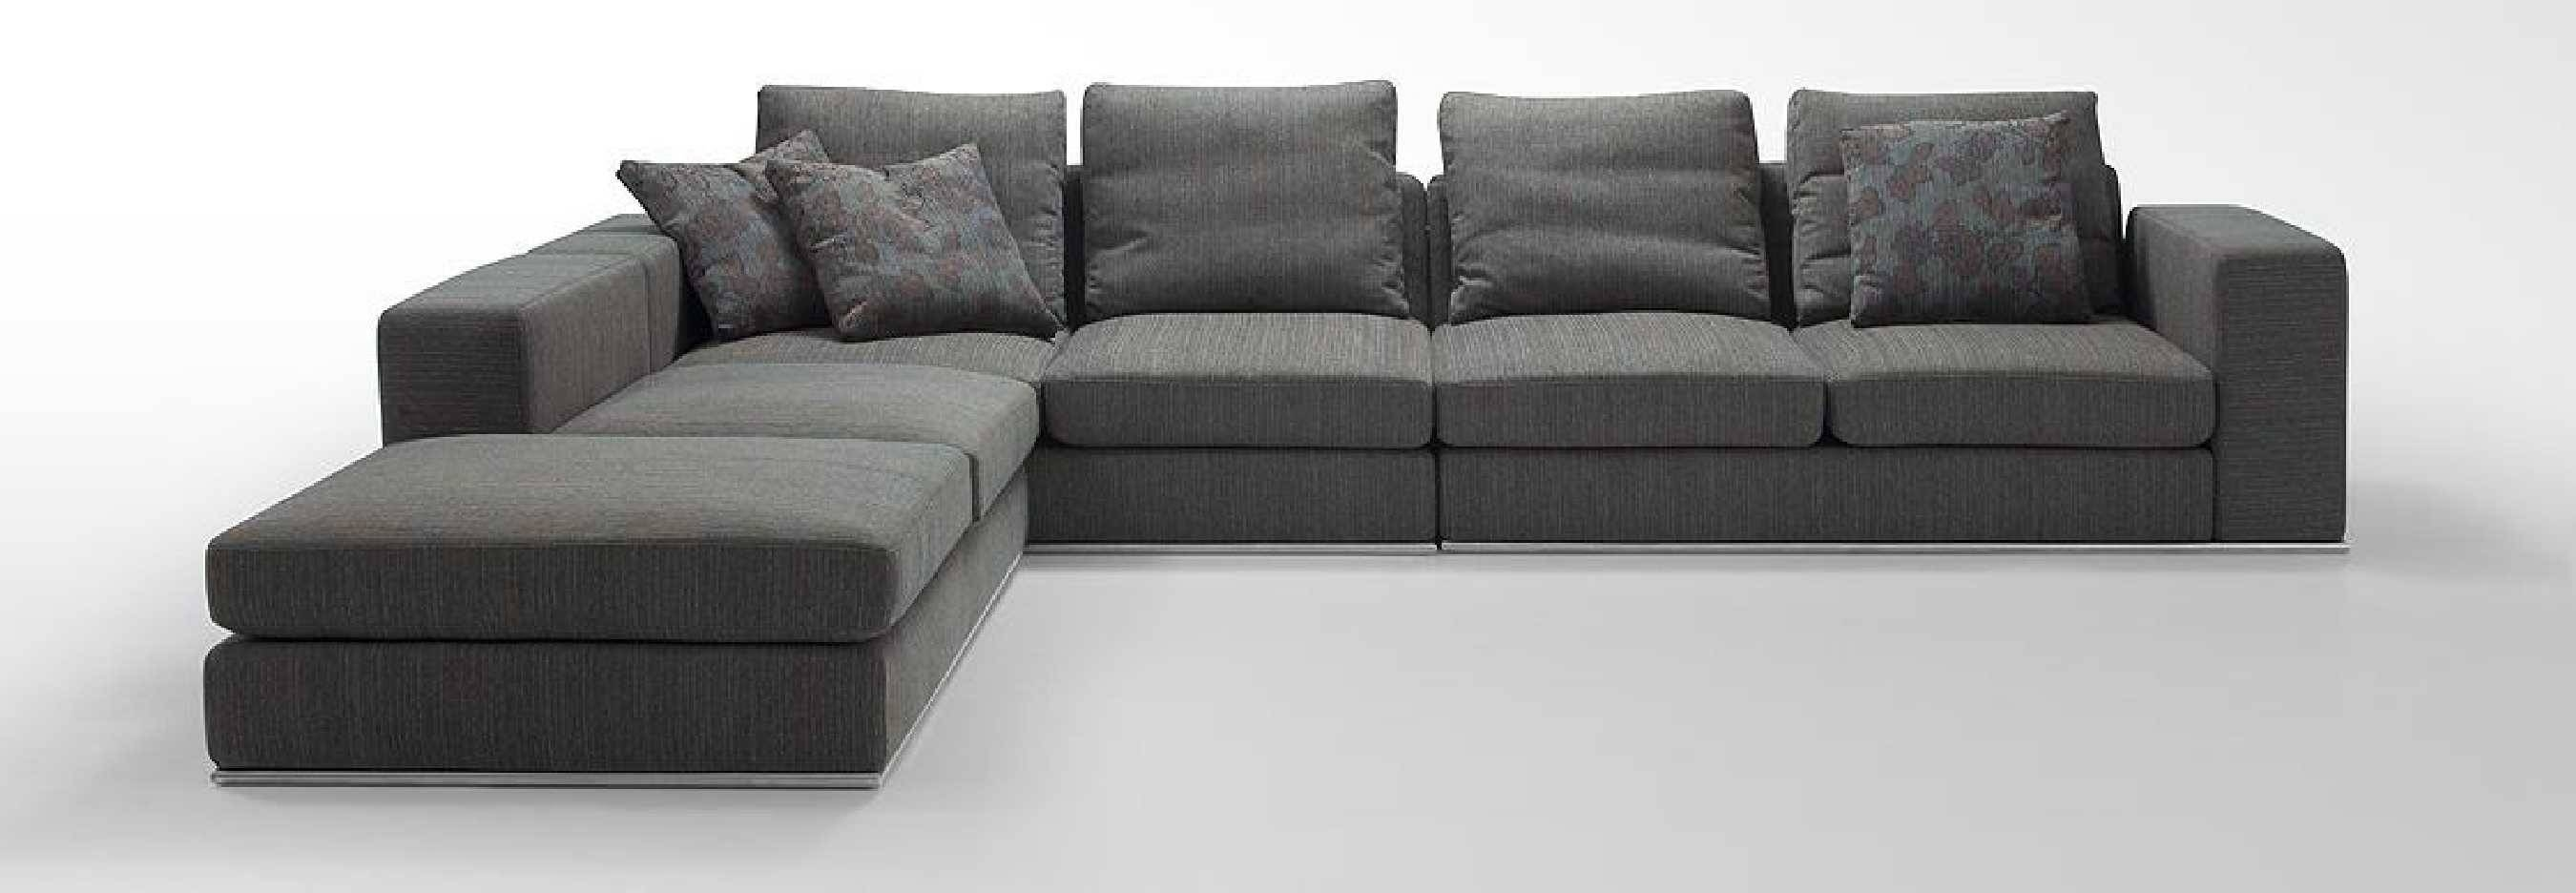 Living Room: Luxury L Shaped Couch Covers For Modern Living Room throughout Slipcover for Leather Sectional Sofas (Image 21 of 30)